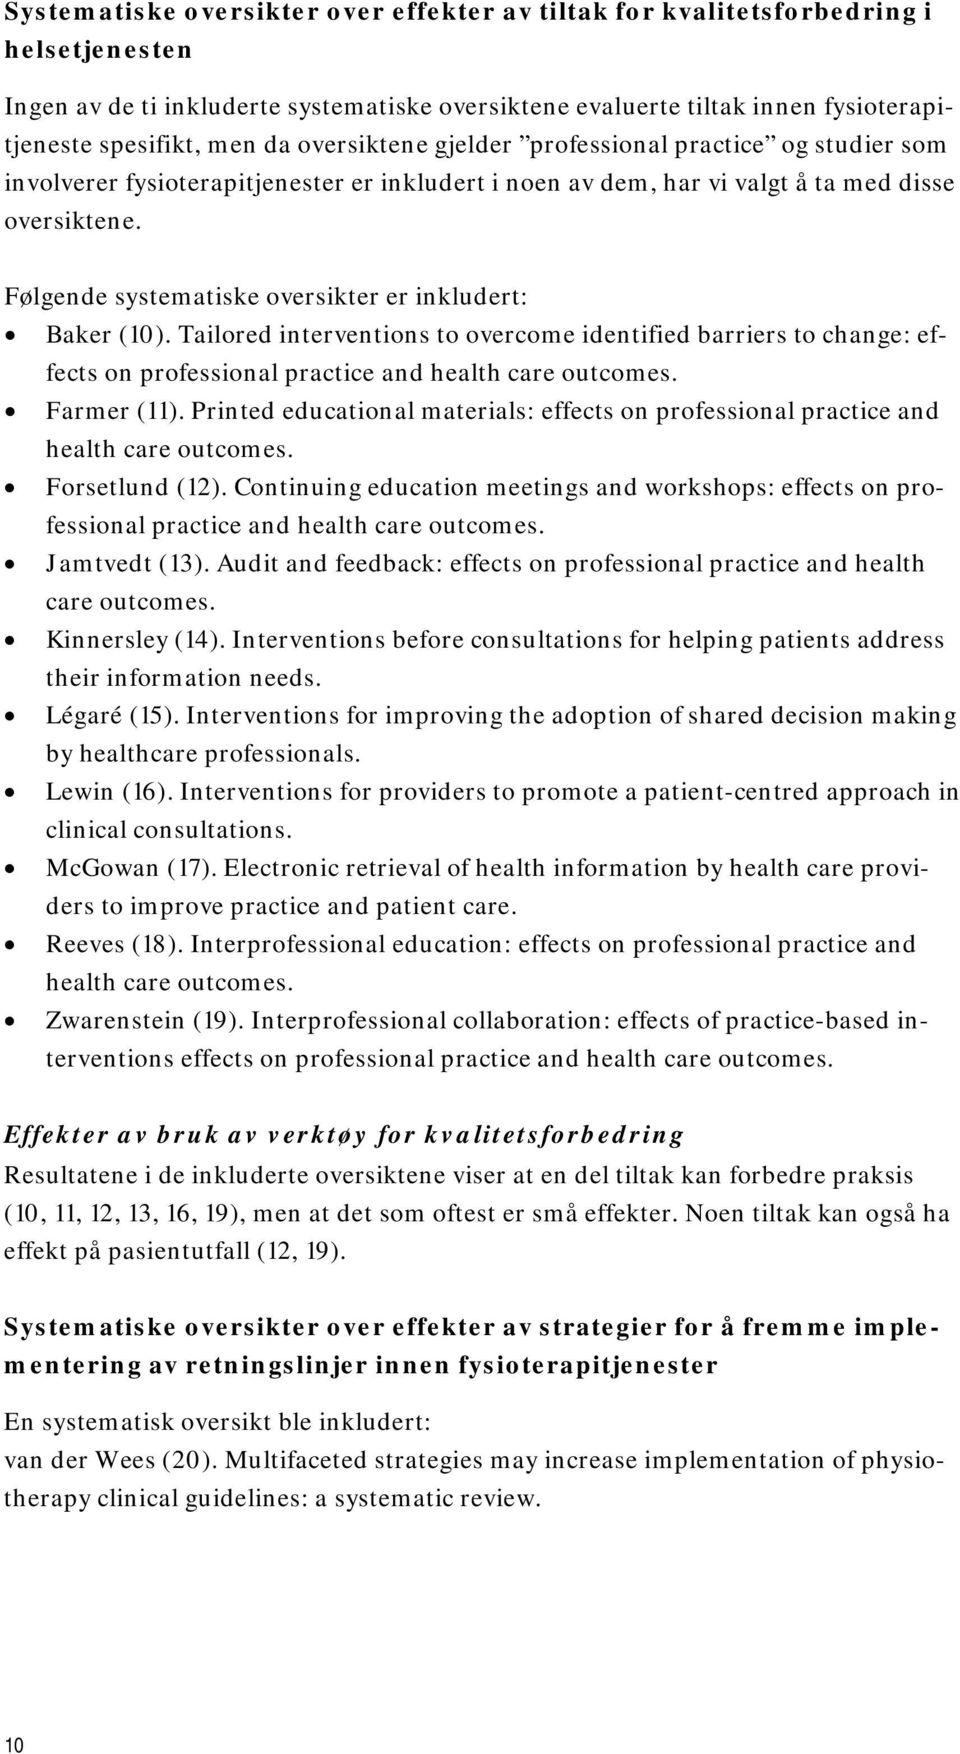 Følgende systematiske oversikter er inkludert: Baker (10). Tailored interventions to overcome identified barriers to change: effects on professional practice and health care outcomes. Farmer (11).